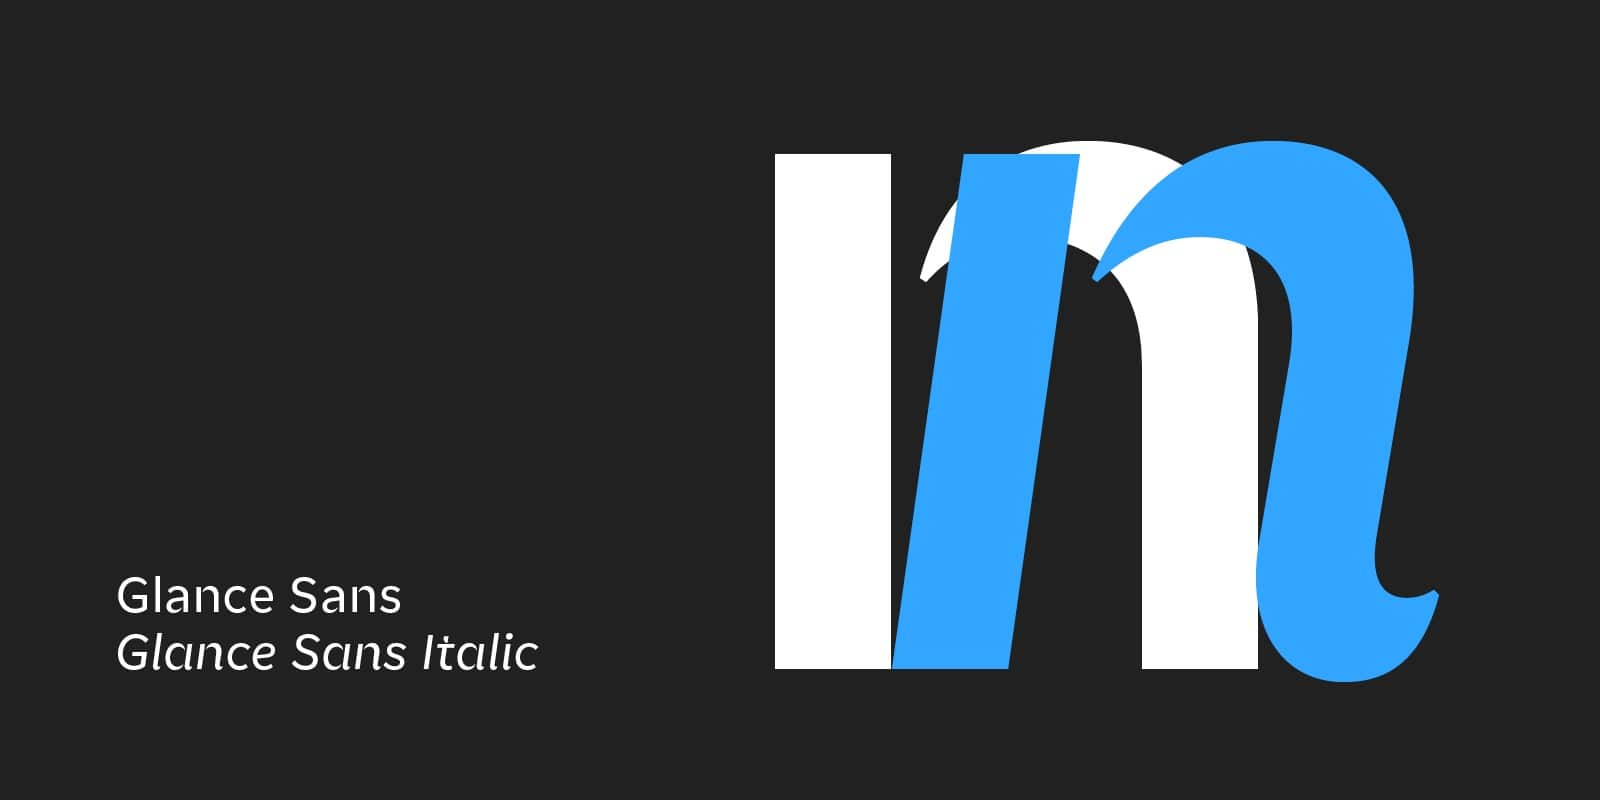 GlanceItalic